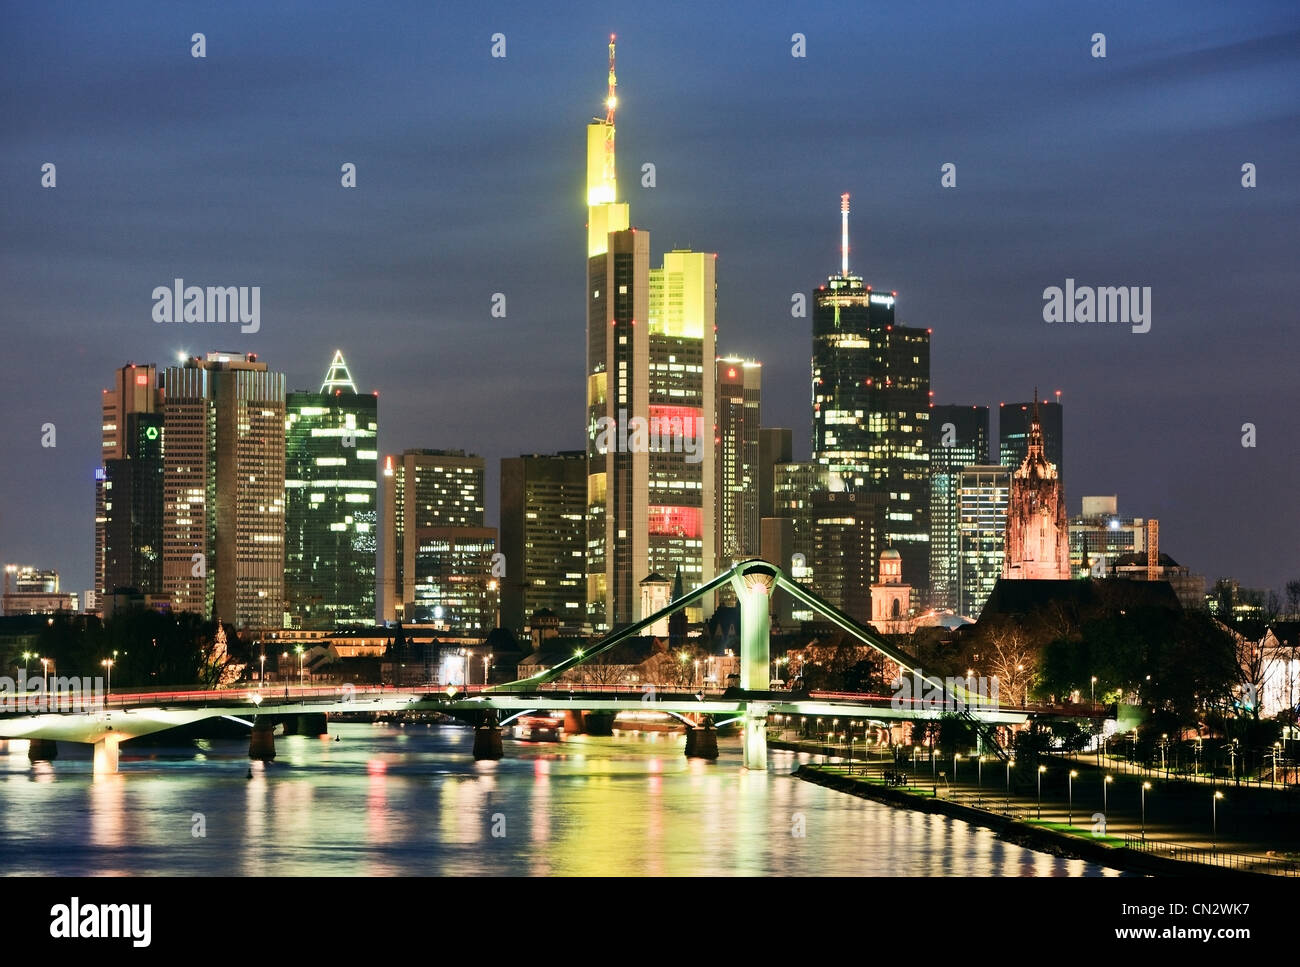 River Main and Frankfurt skyline at night, Frankfurt, Germany Stock Photo